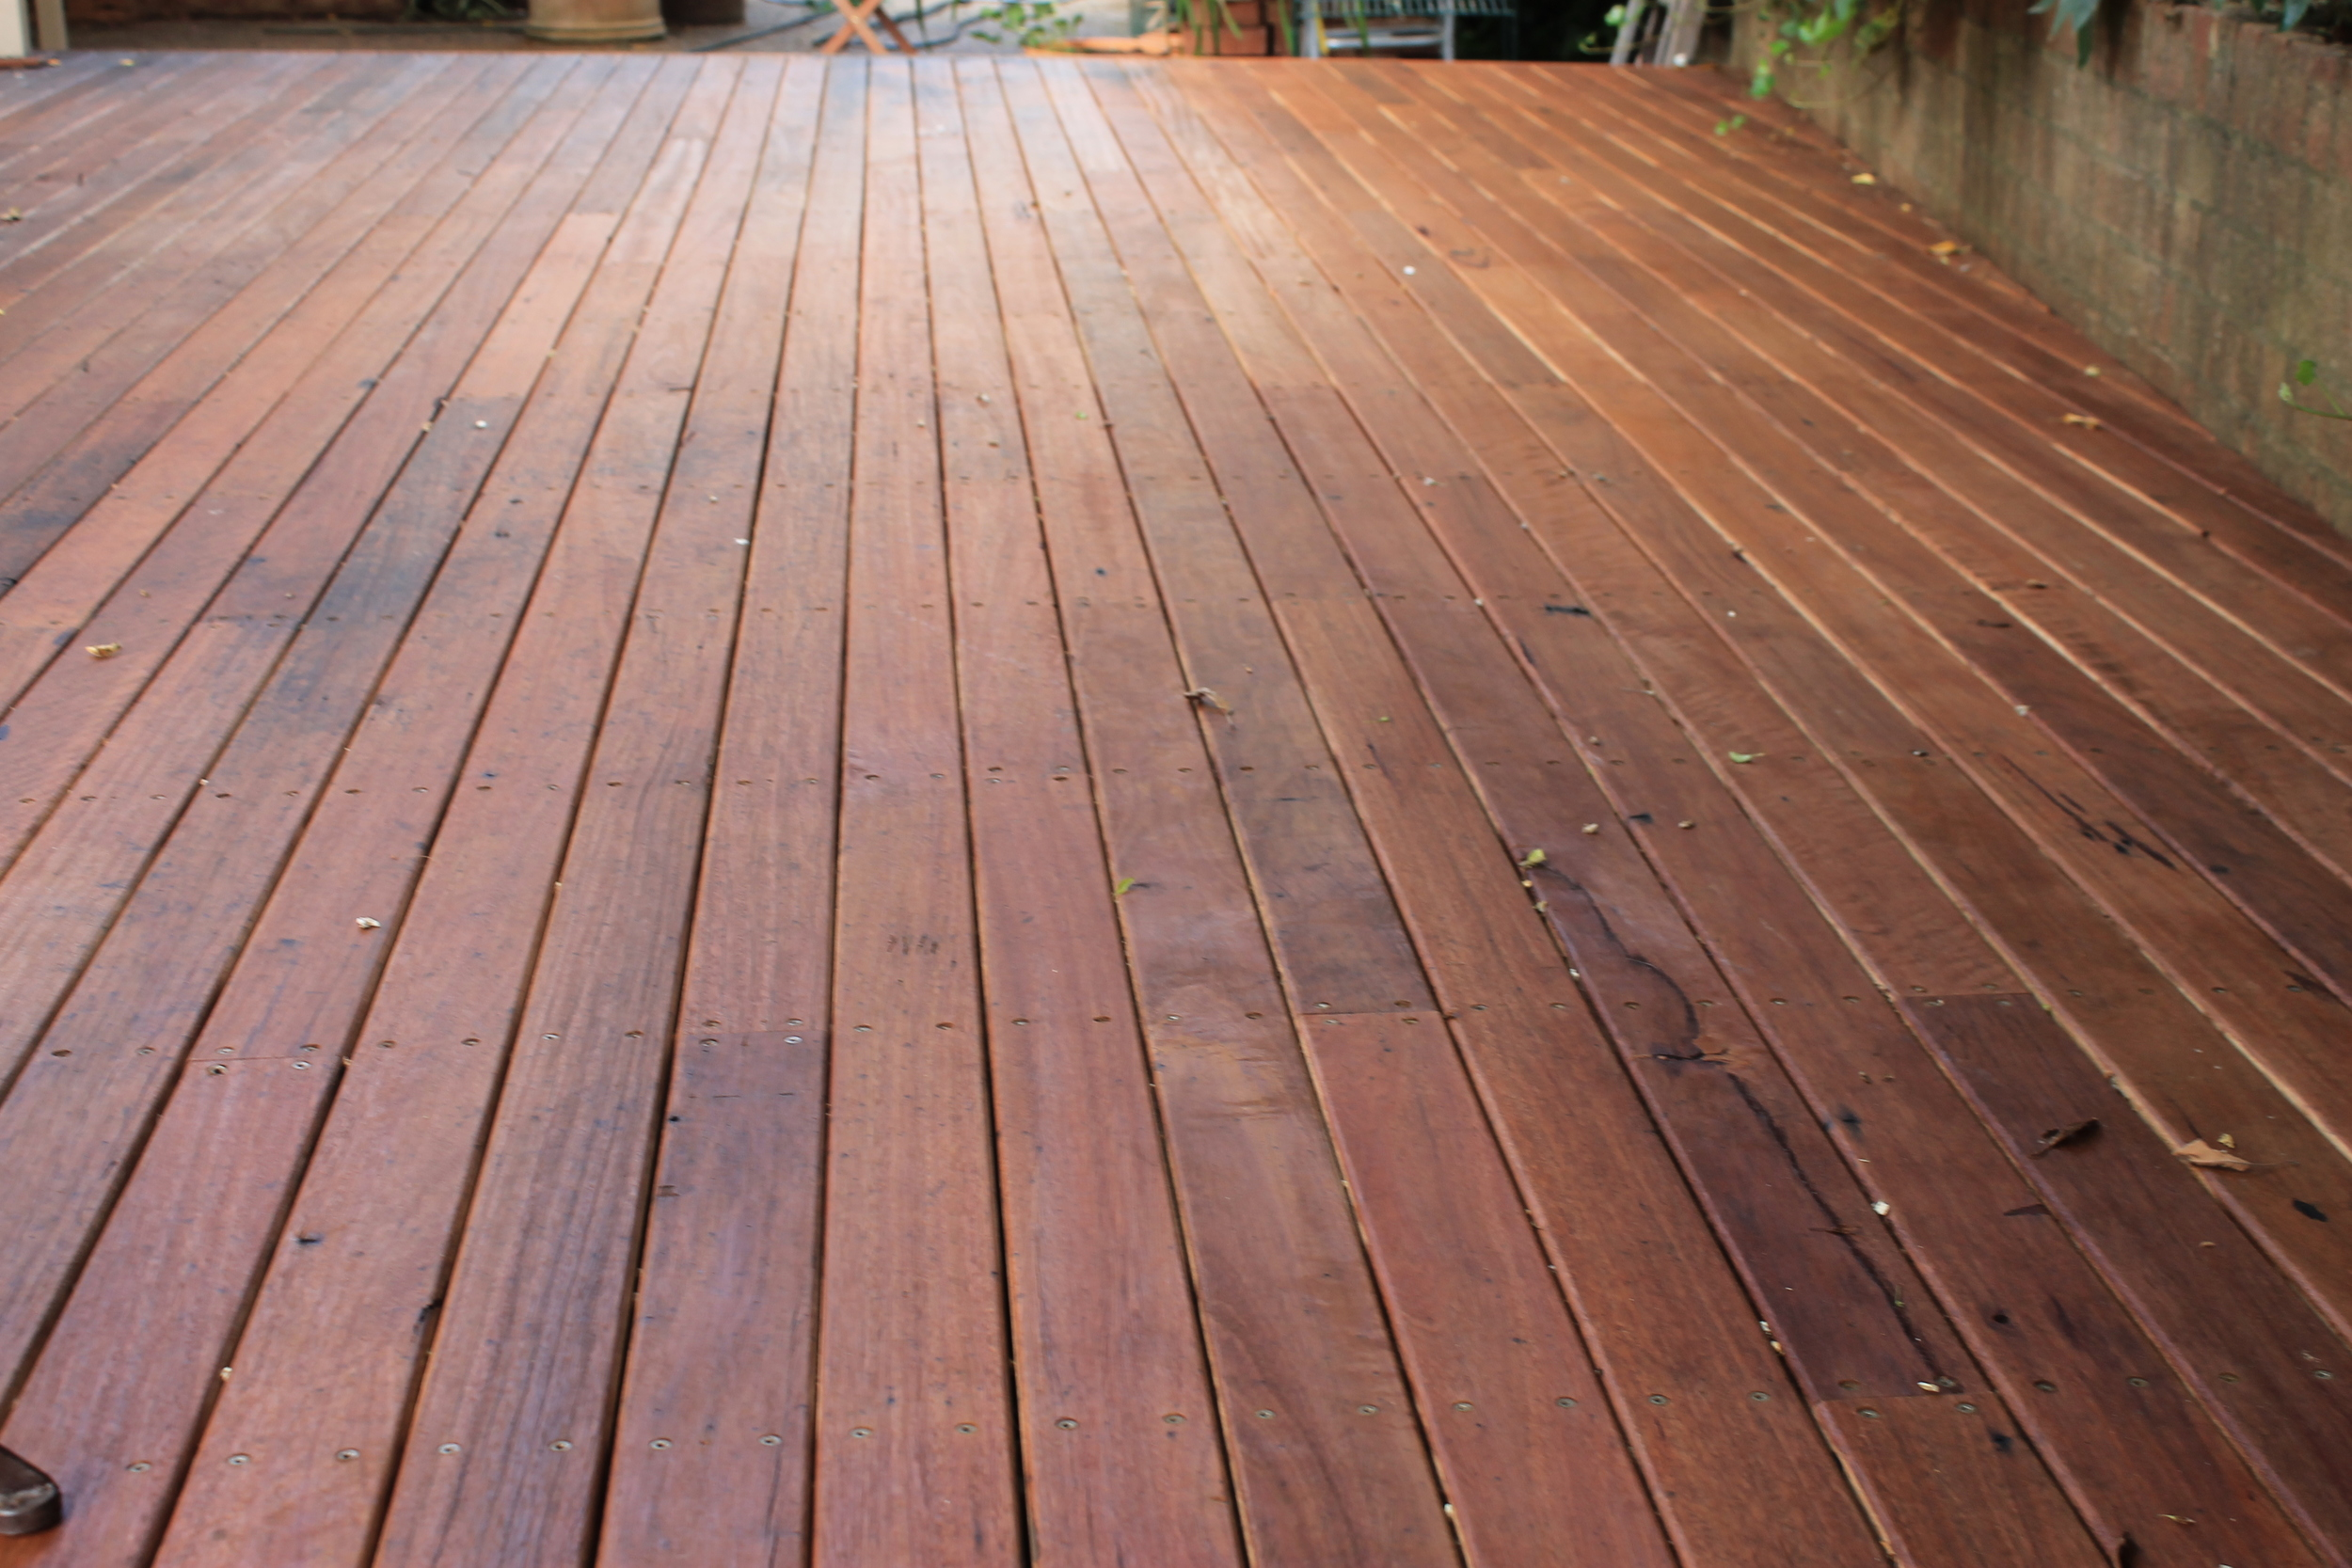 Rustic Decking made from salvaged house rafters